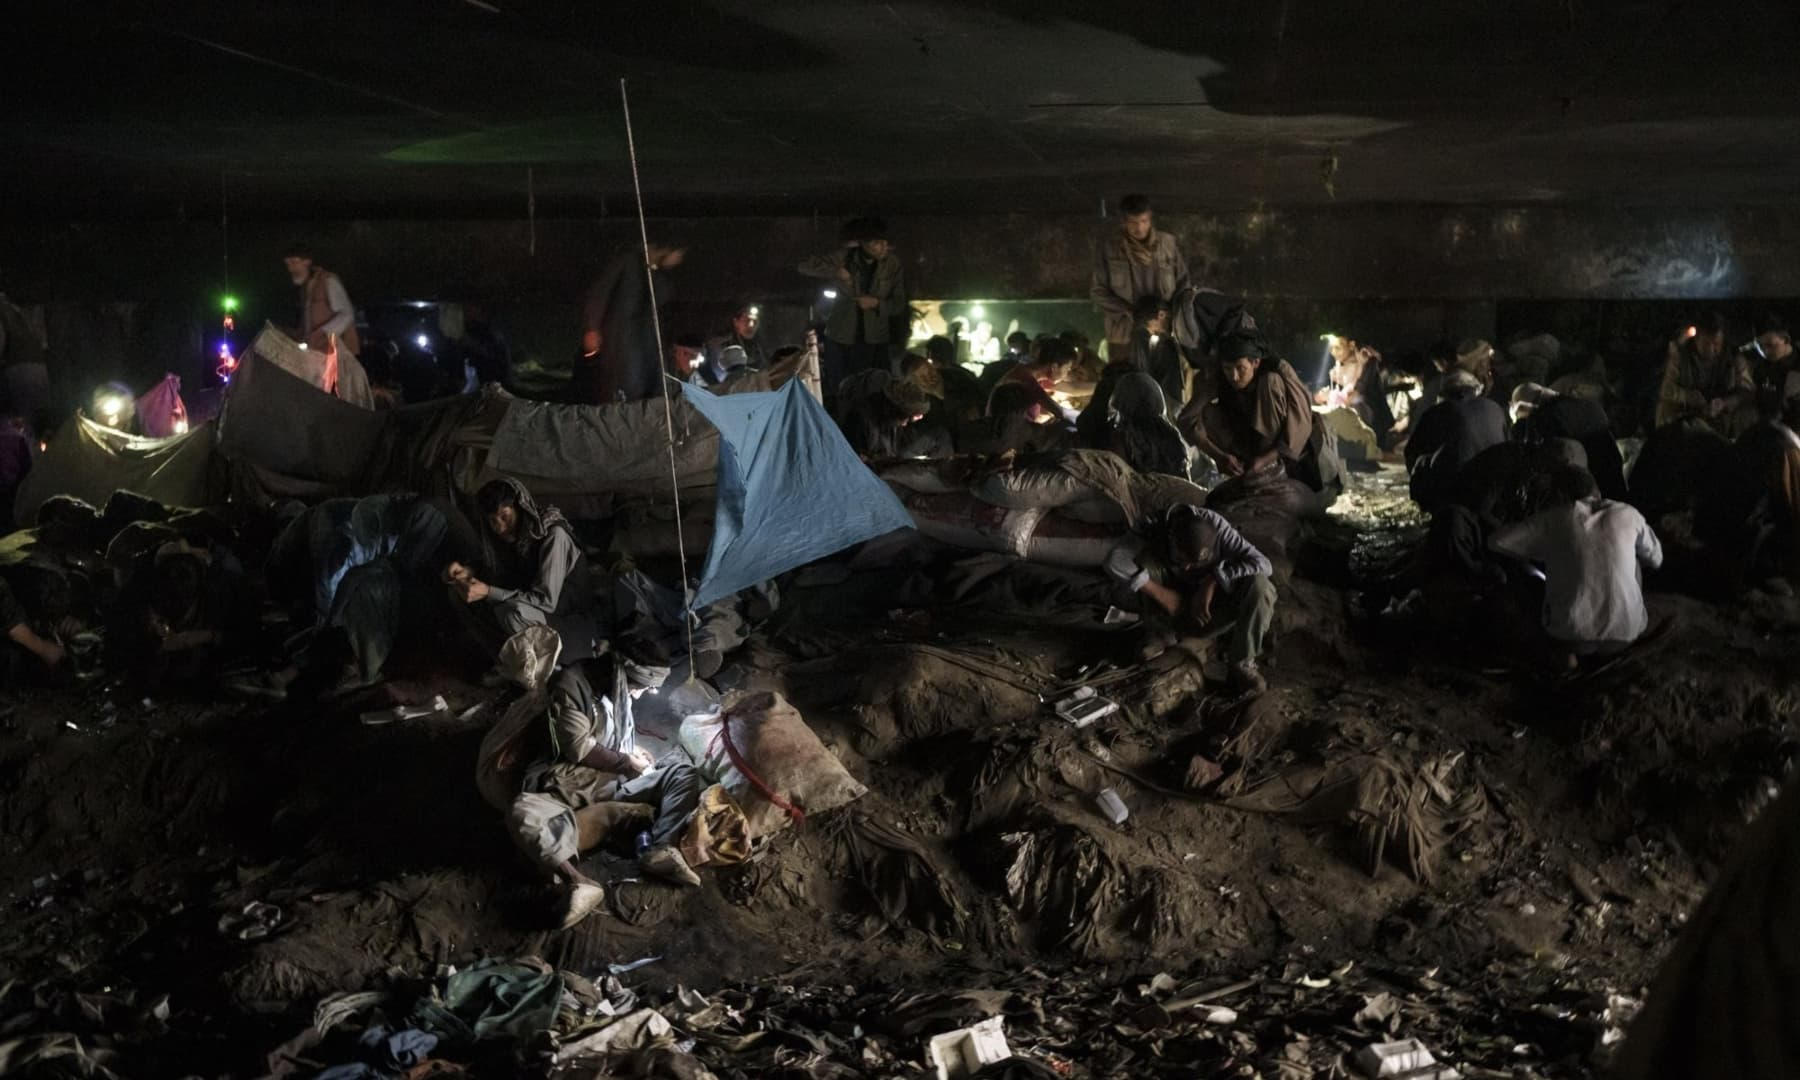 Afghans gather under a bridge to consume drugs, mostly heroin and methamphetamines in Kabul, Afghanistan, September 30, 2021. — AP